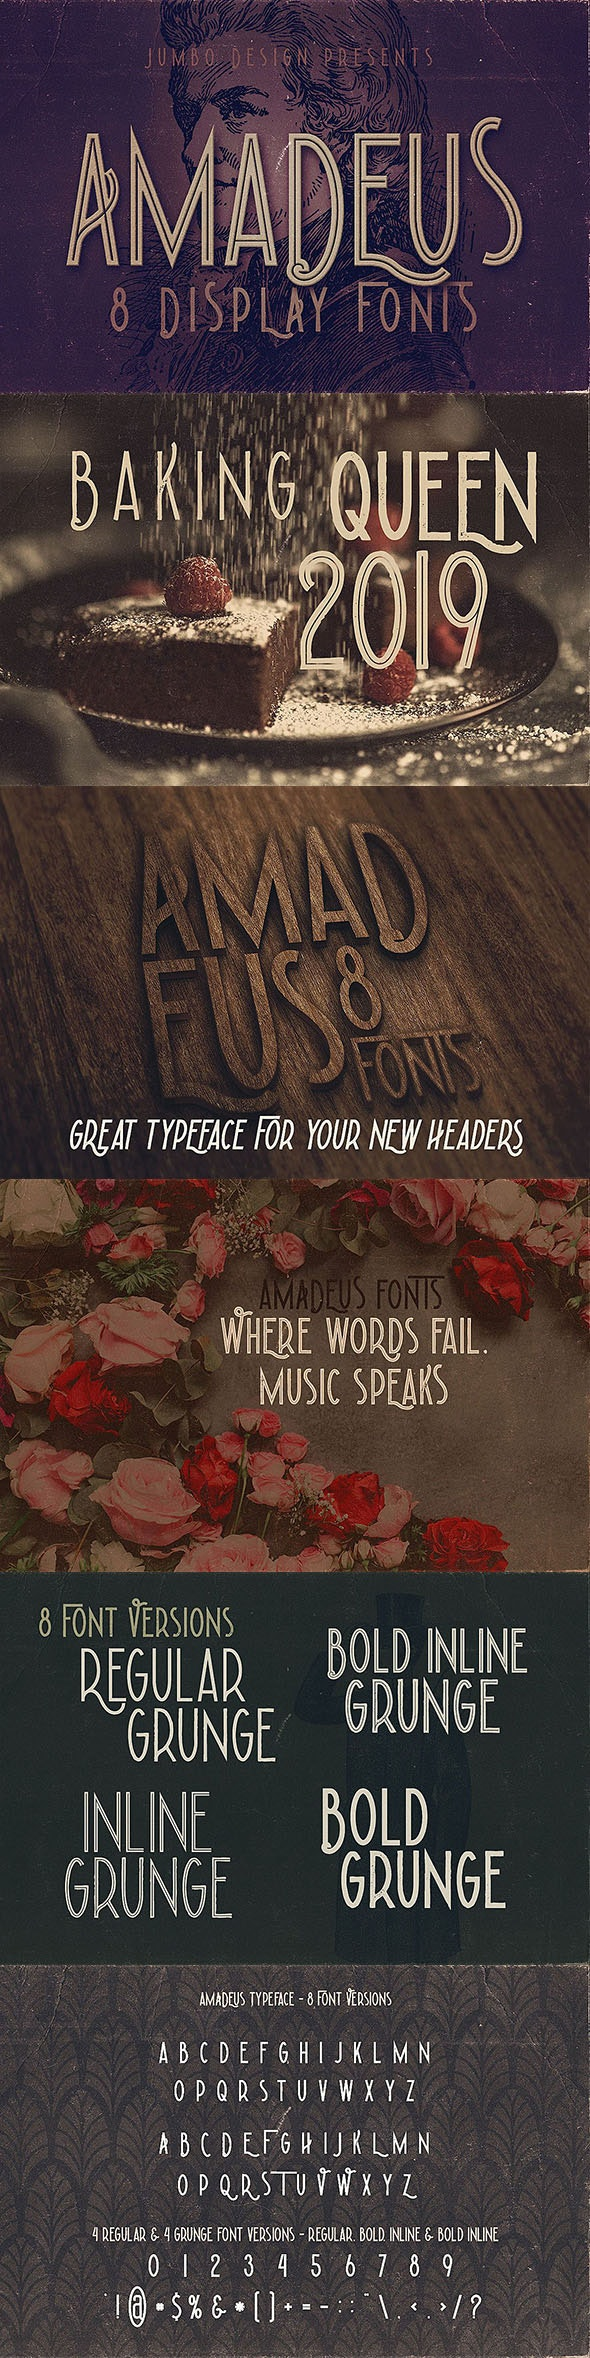 Amadeus - Display Font - Sans-Serif Fonts